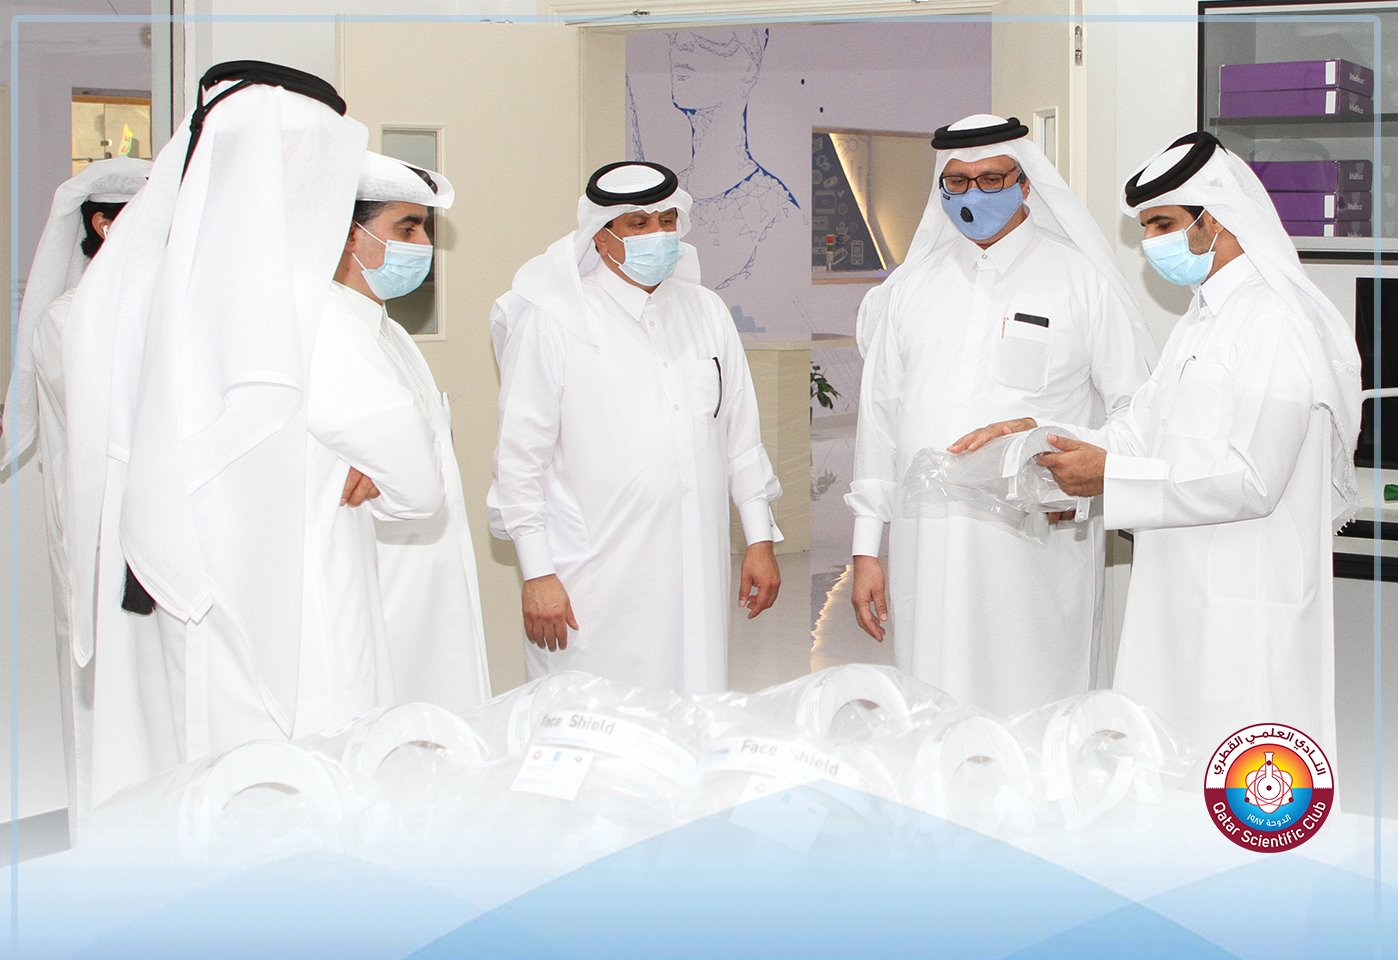 Qatar Scientific Club Manufactures 6 Thousand Face Shields for HMC and Oryx Staff